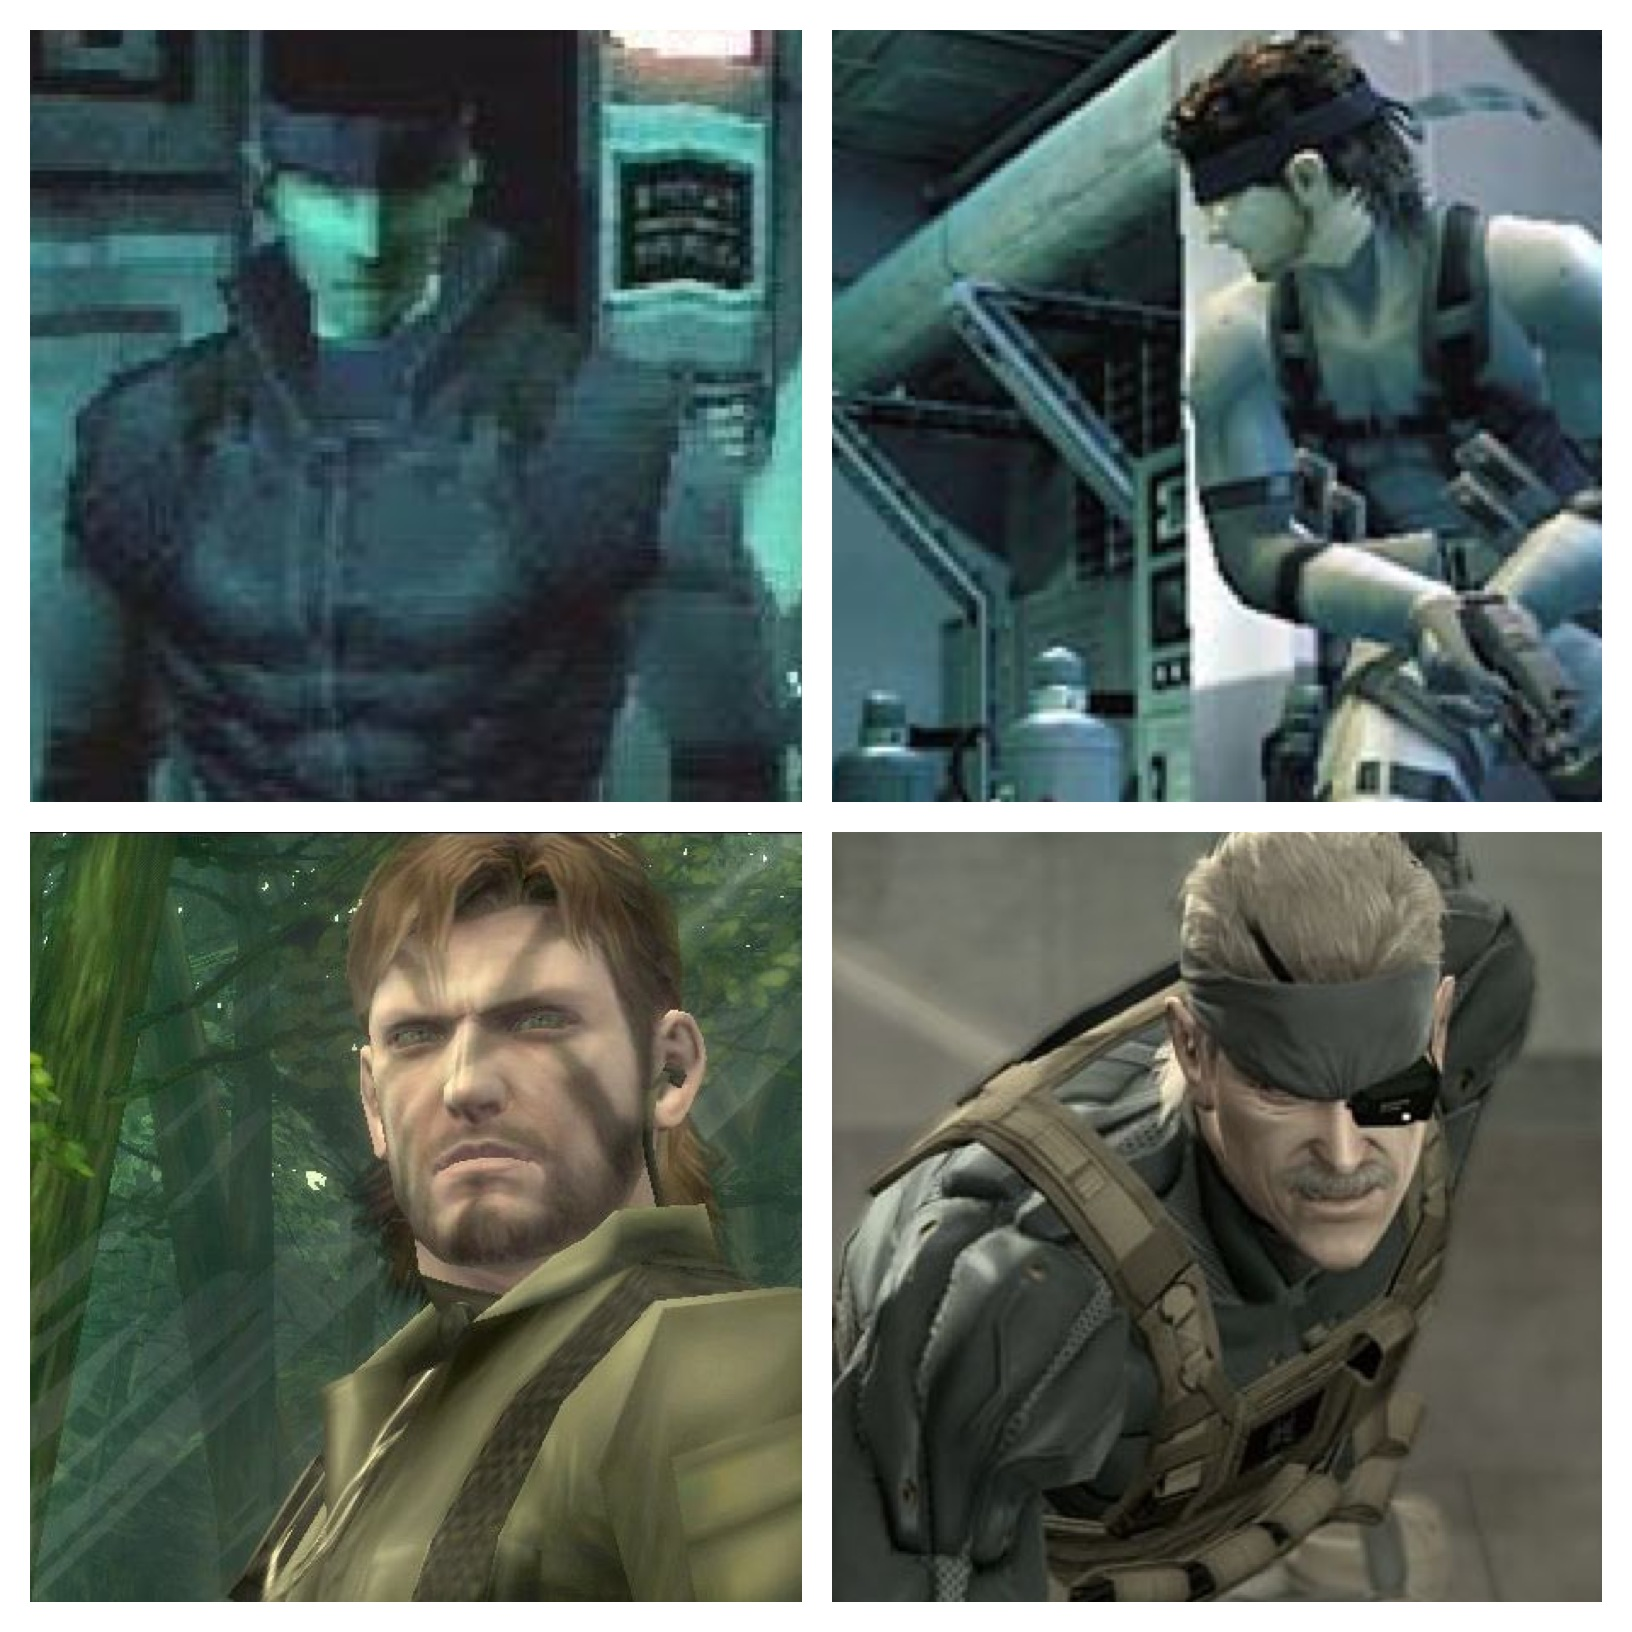 (L-R, U-D) Solid Snake (MGS), Solid Snake (MGS2), Naked Snake/Big Boss (MGS3), Old Snake/Solid Snake (MGS4)